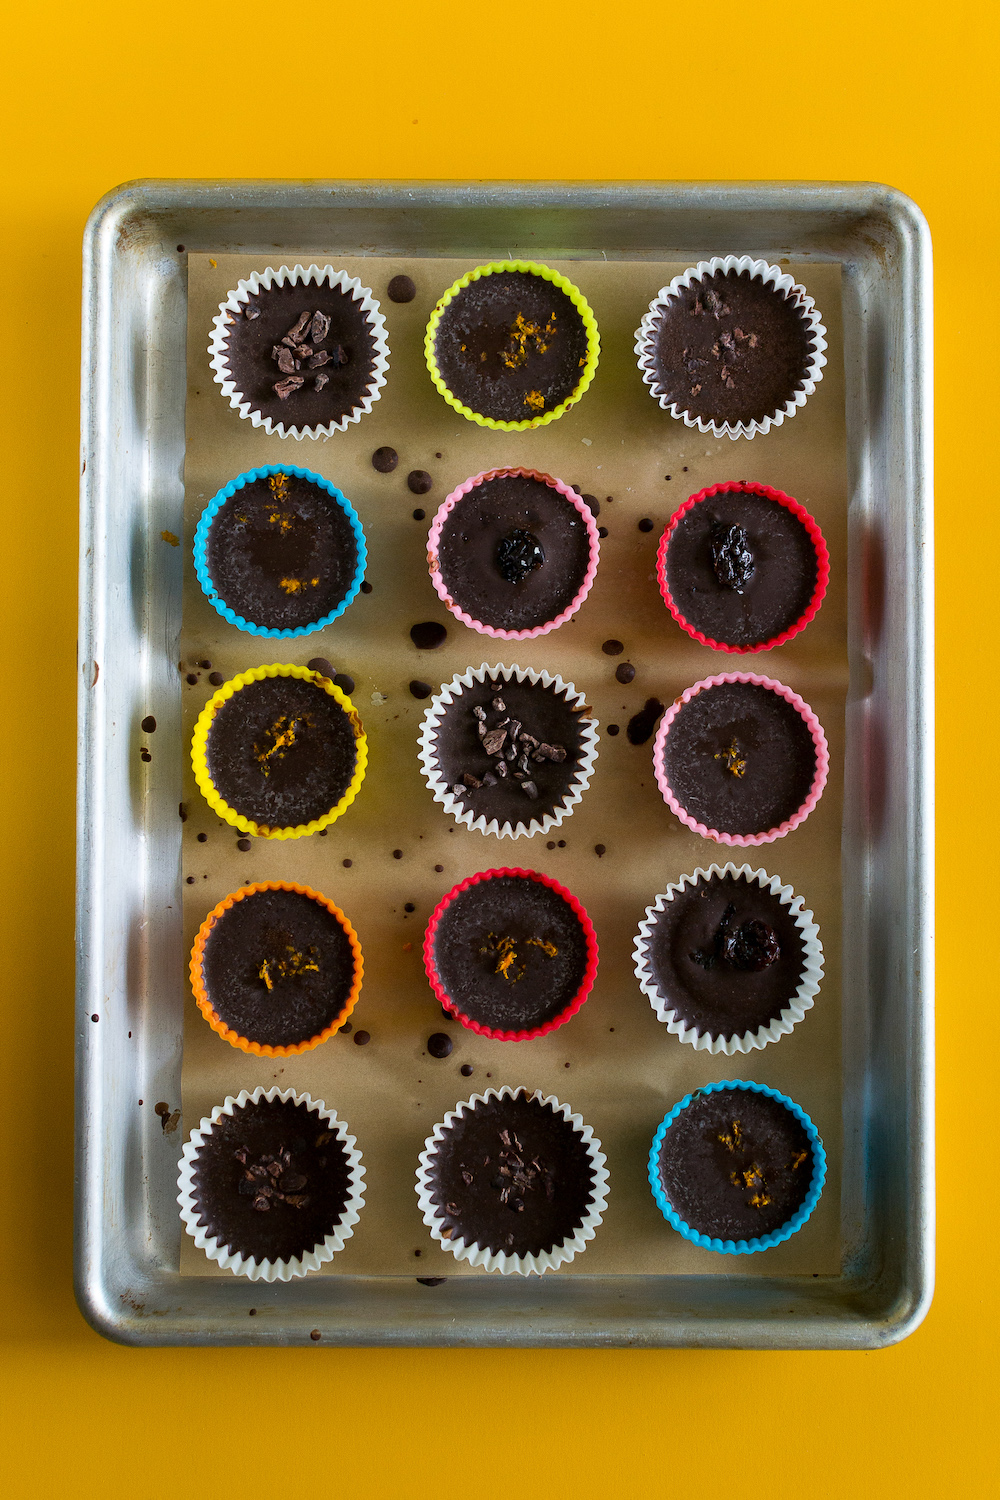 Chocolate-Orange Peanut Butter Cups with Dried Cherries by Unrefined Vegan